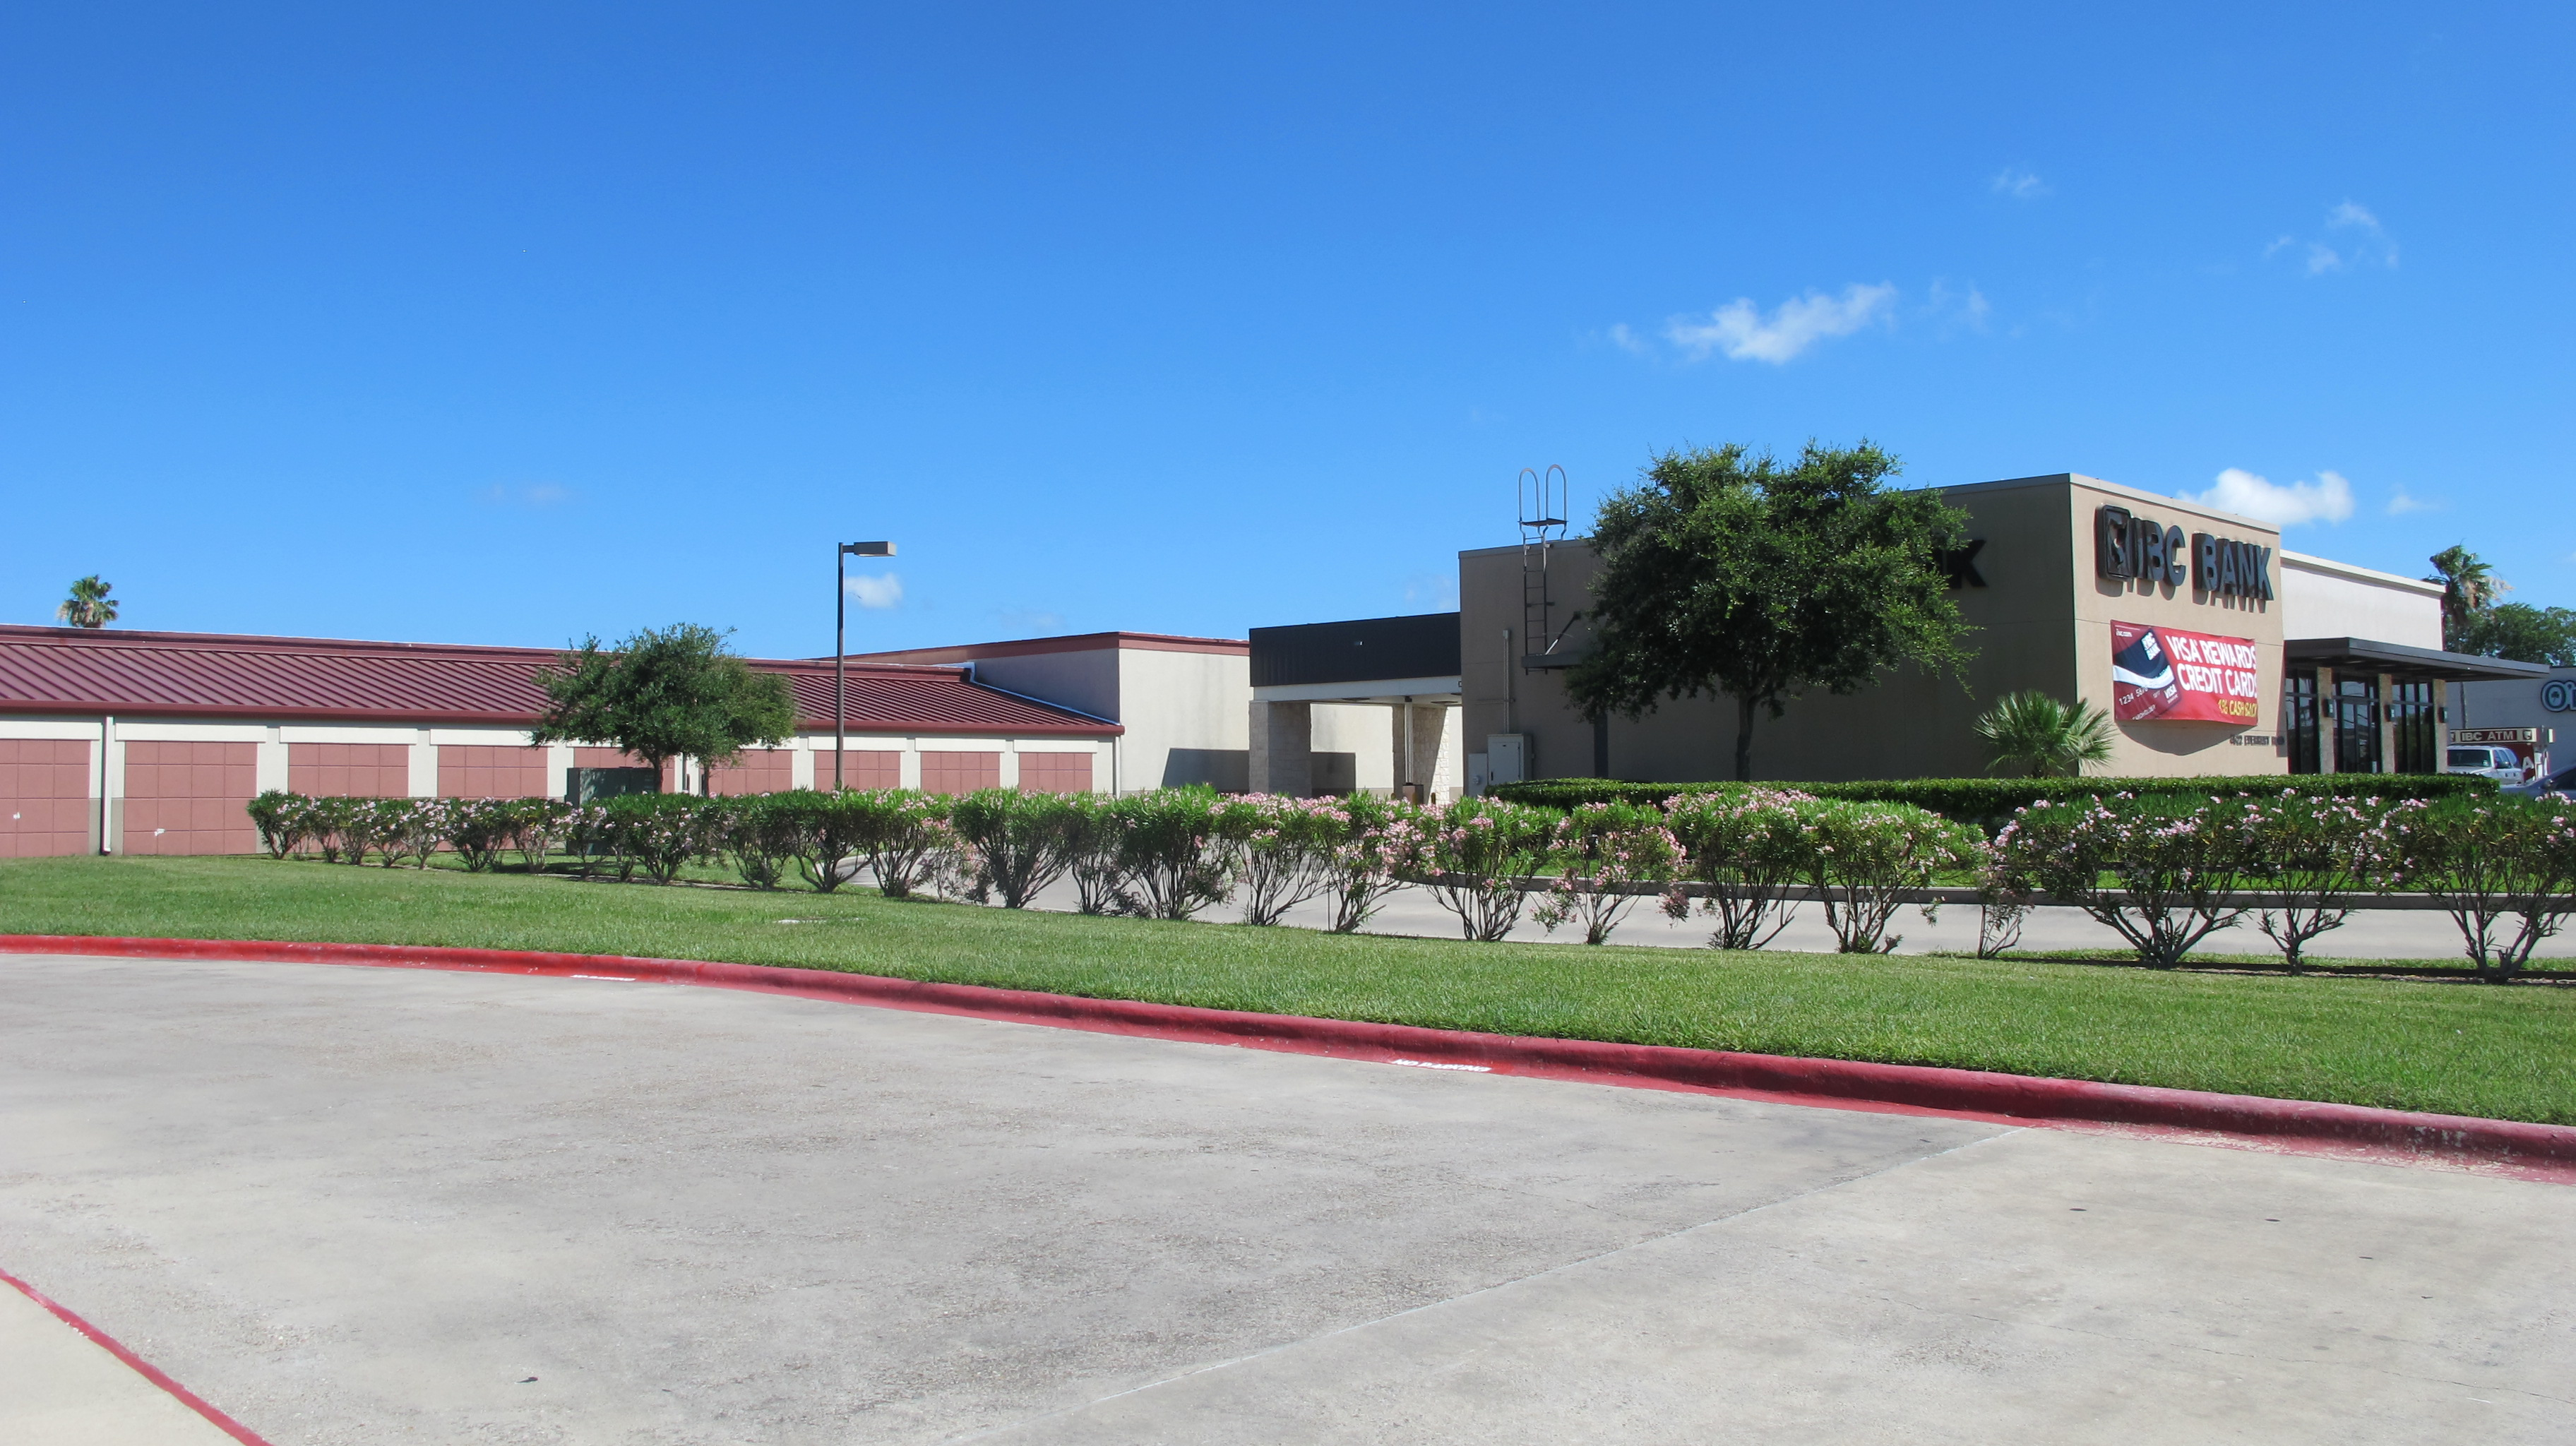 The Storage Company at Everhart image 0